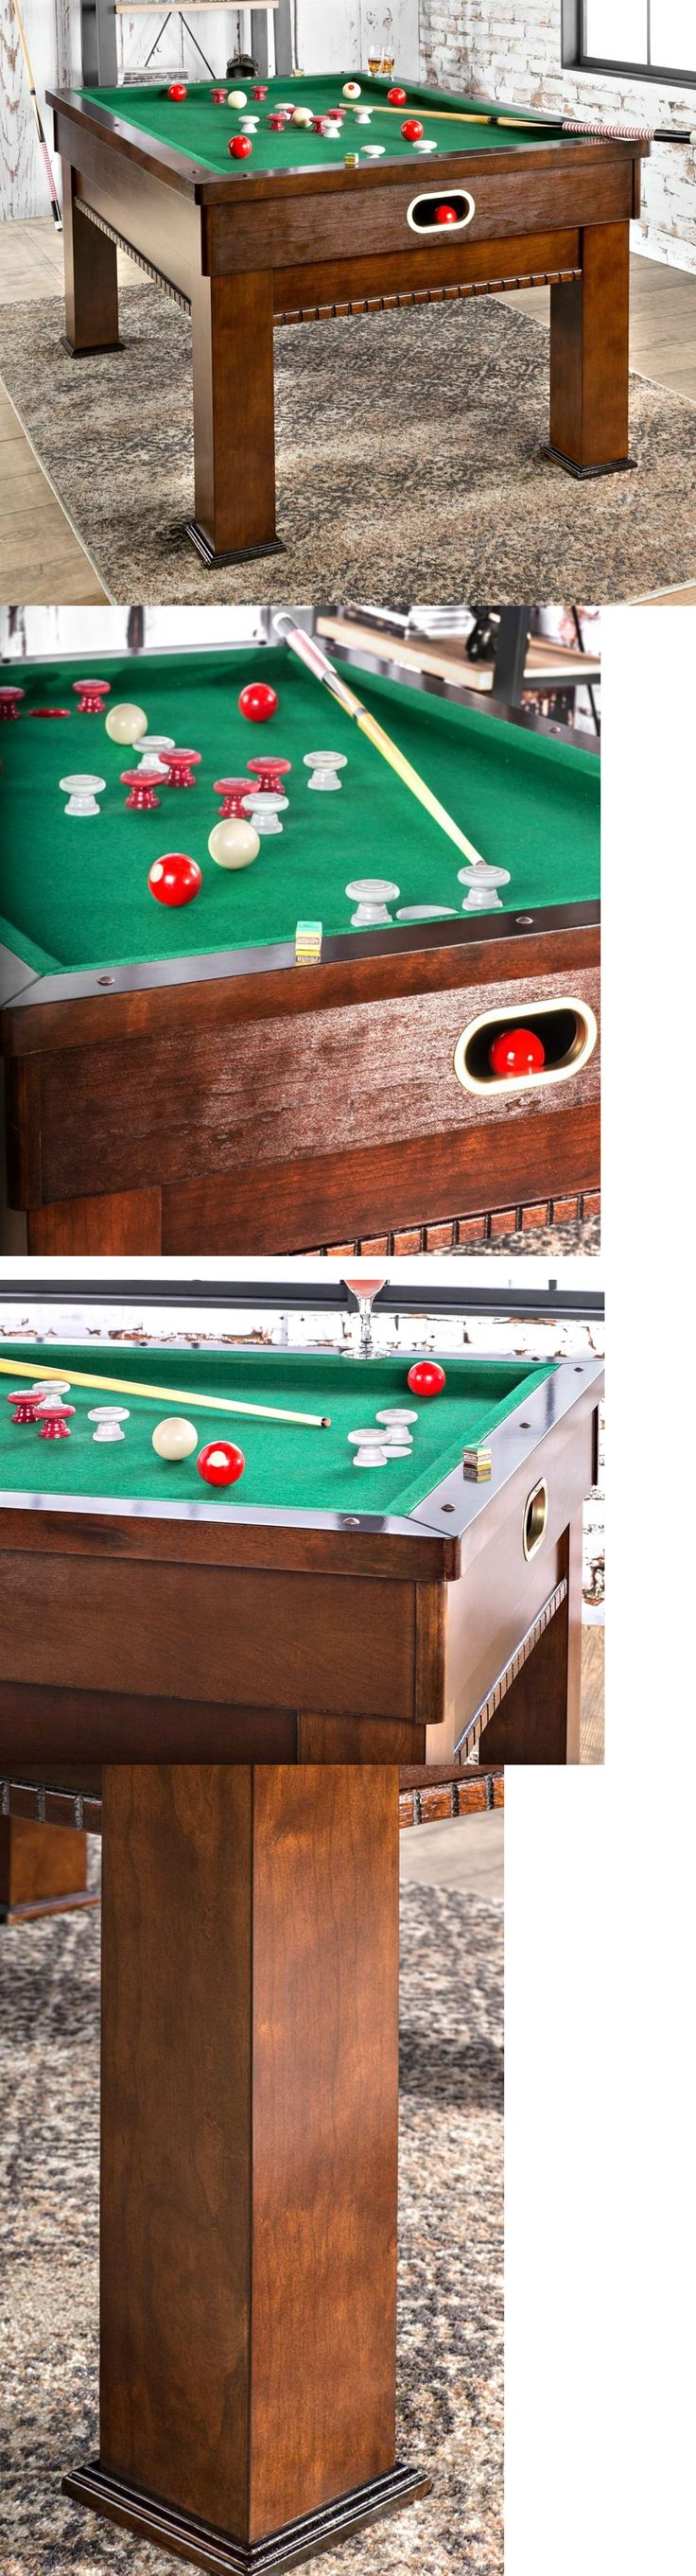 Tables 21213: Bumper Pool Table Game Tables For Game Room Family Kids Bar Cues Balls Chalk Set -> BUY IT NOW ONLY: $859 on eBay!